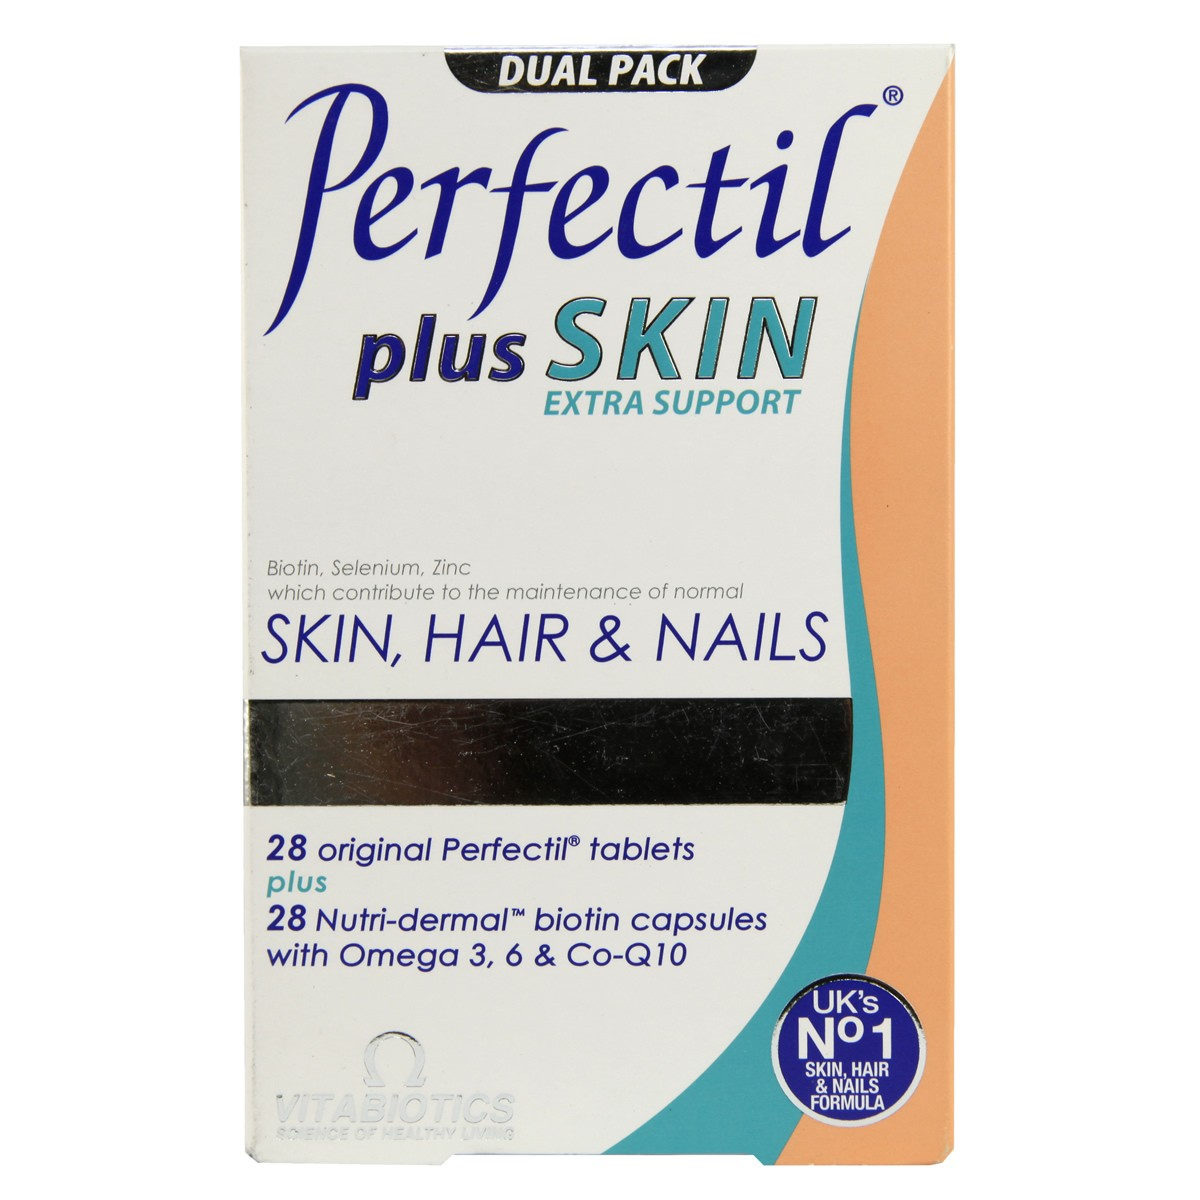 Vitabiotics Perfectil Plus Skin Dual Pack